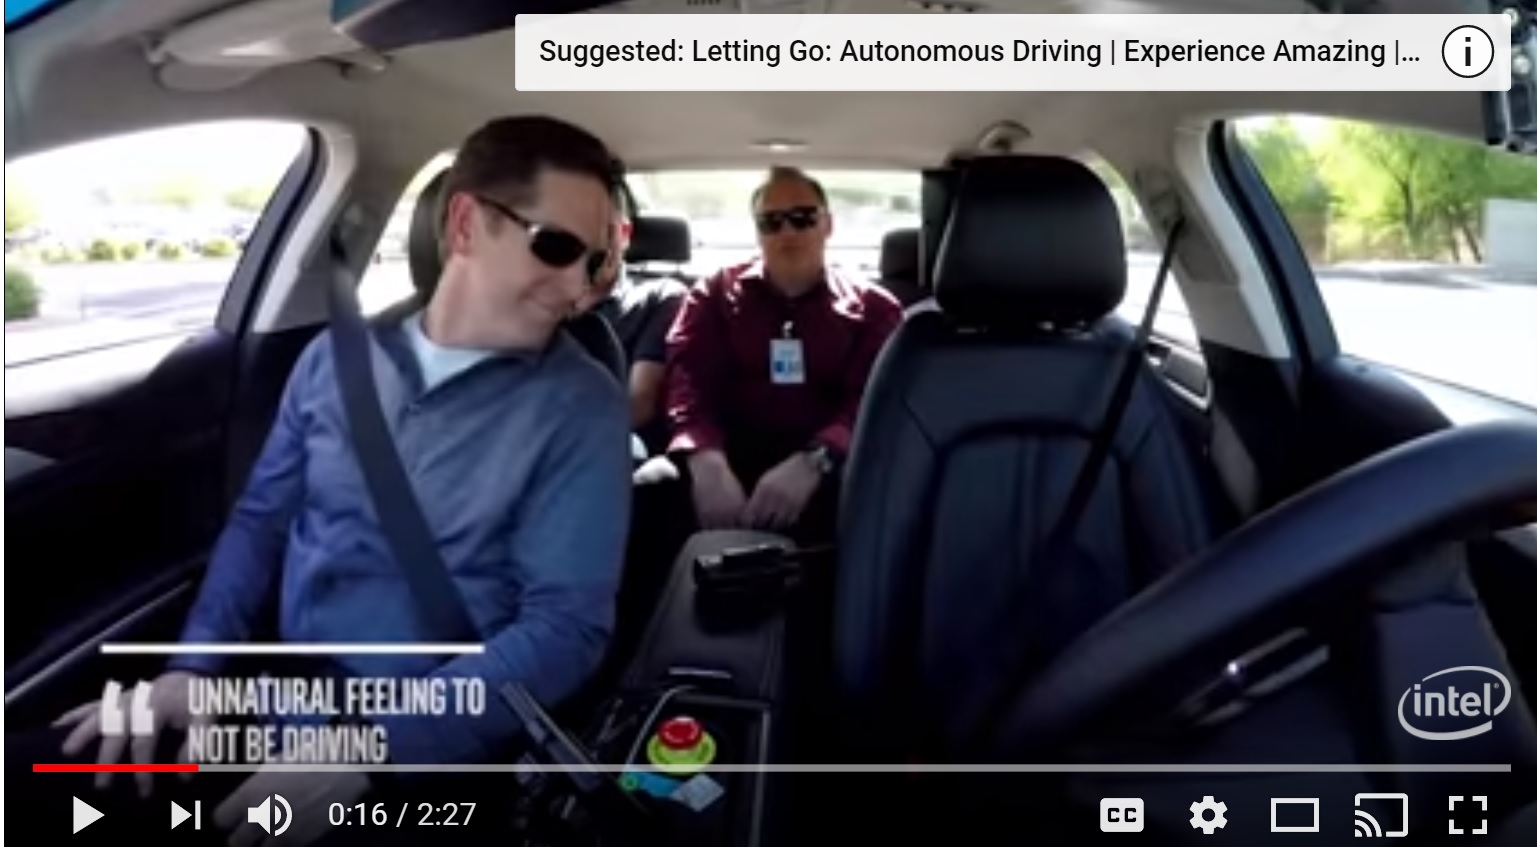 driverless-car-intel